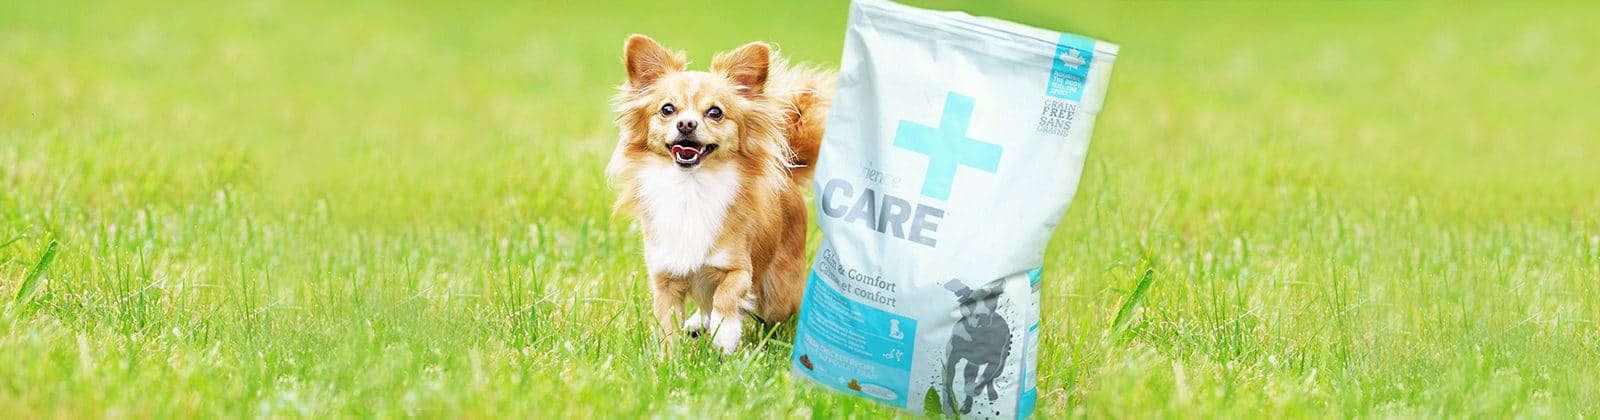 Nutrience Care Calm & Comfort dog anxiety